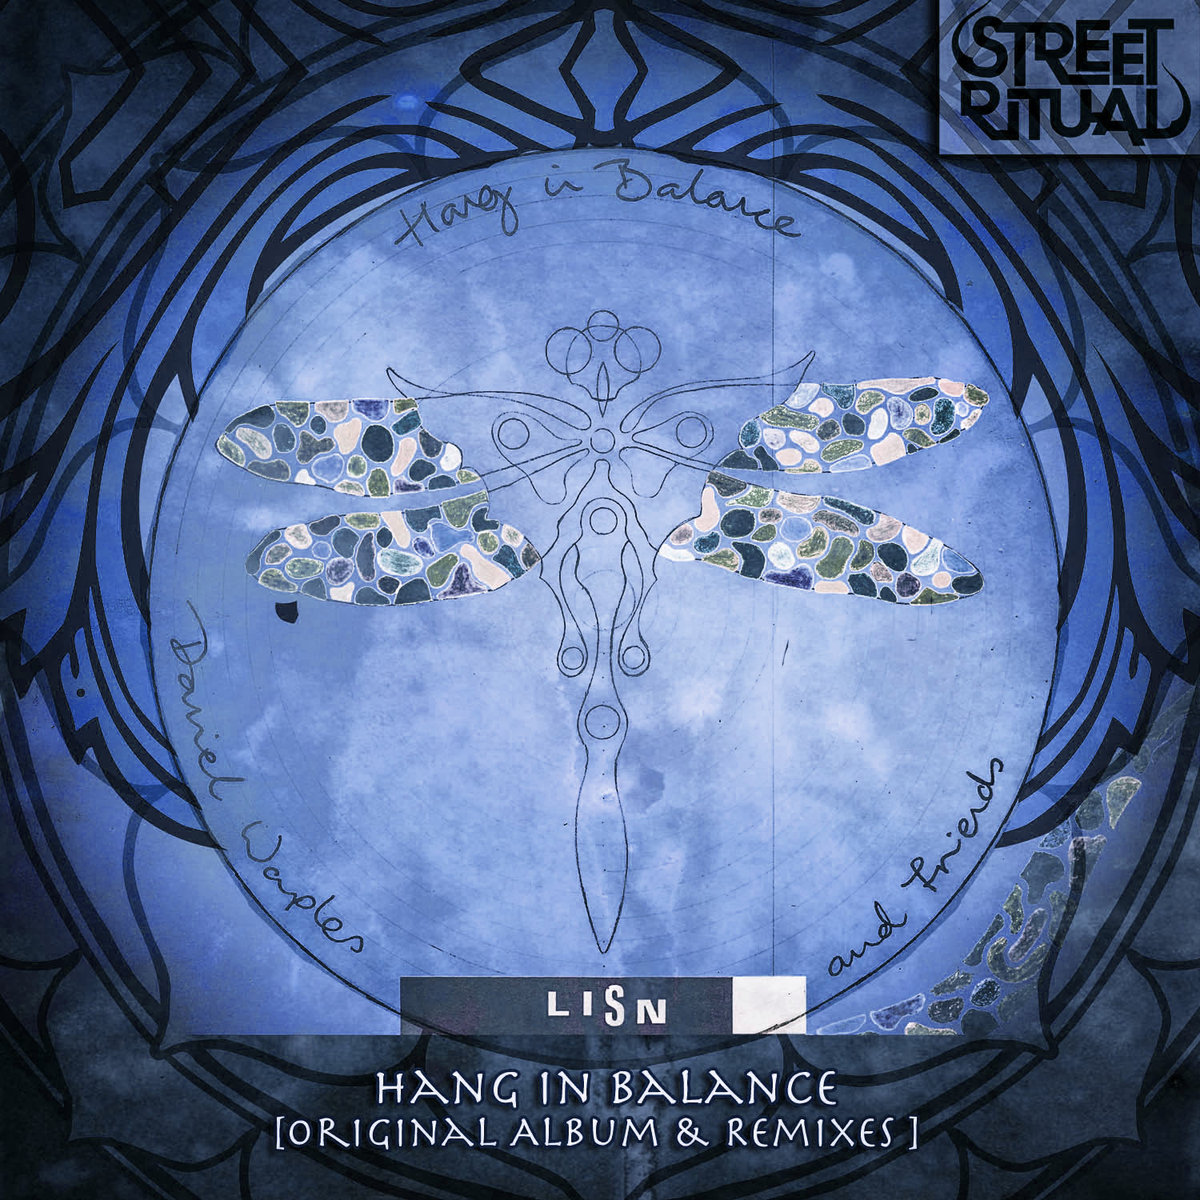 Hang in Balance - Lisn (Remixes & Originals) @ 'Lisn (Remixes & Originals)' album (bass, daniel waples)